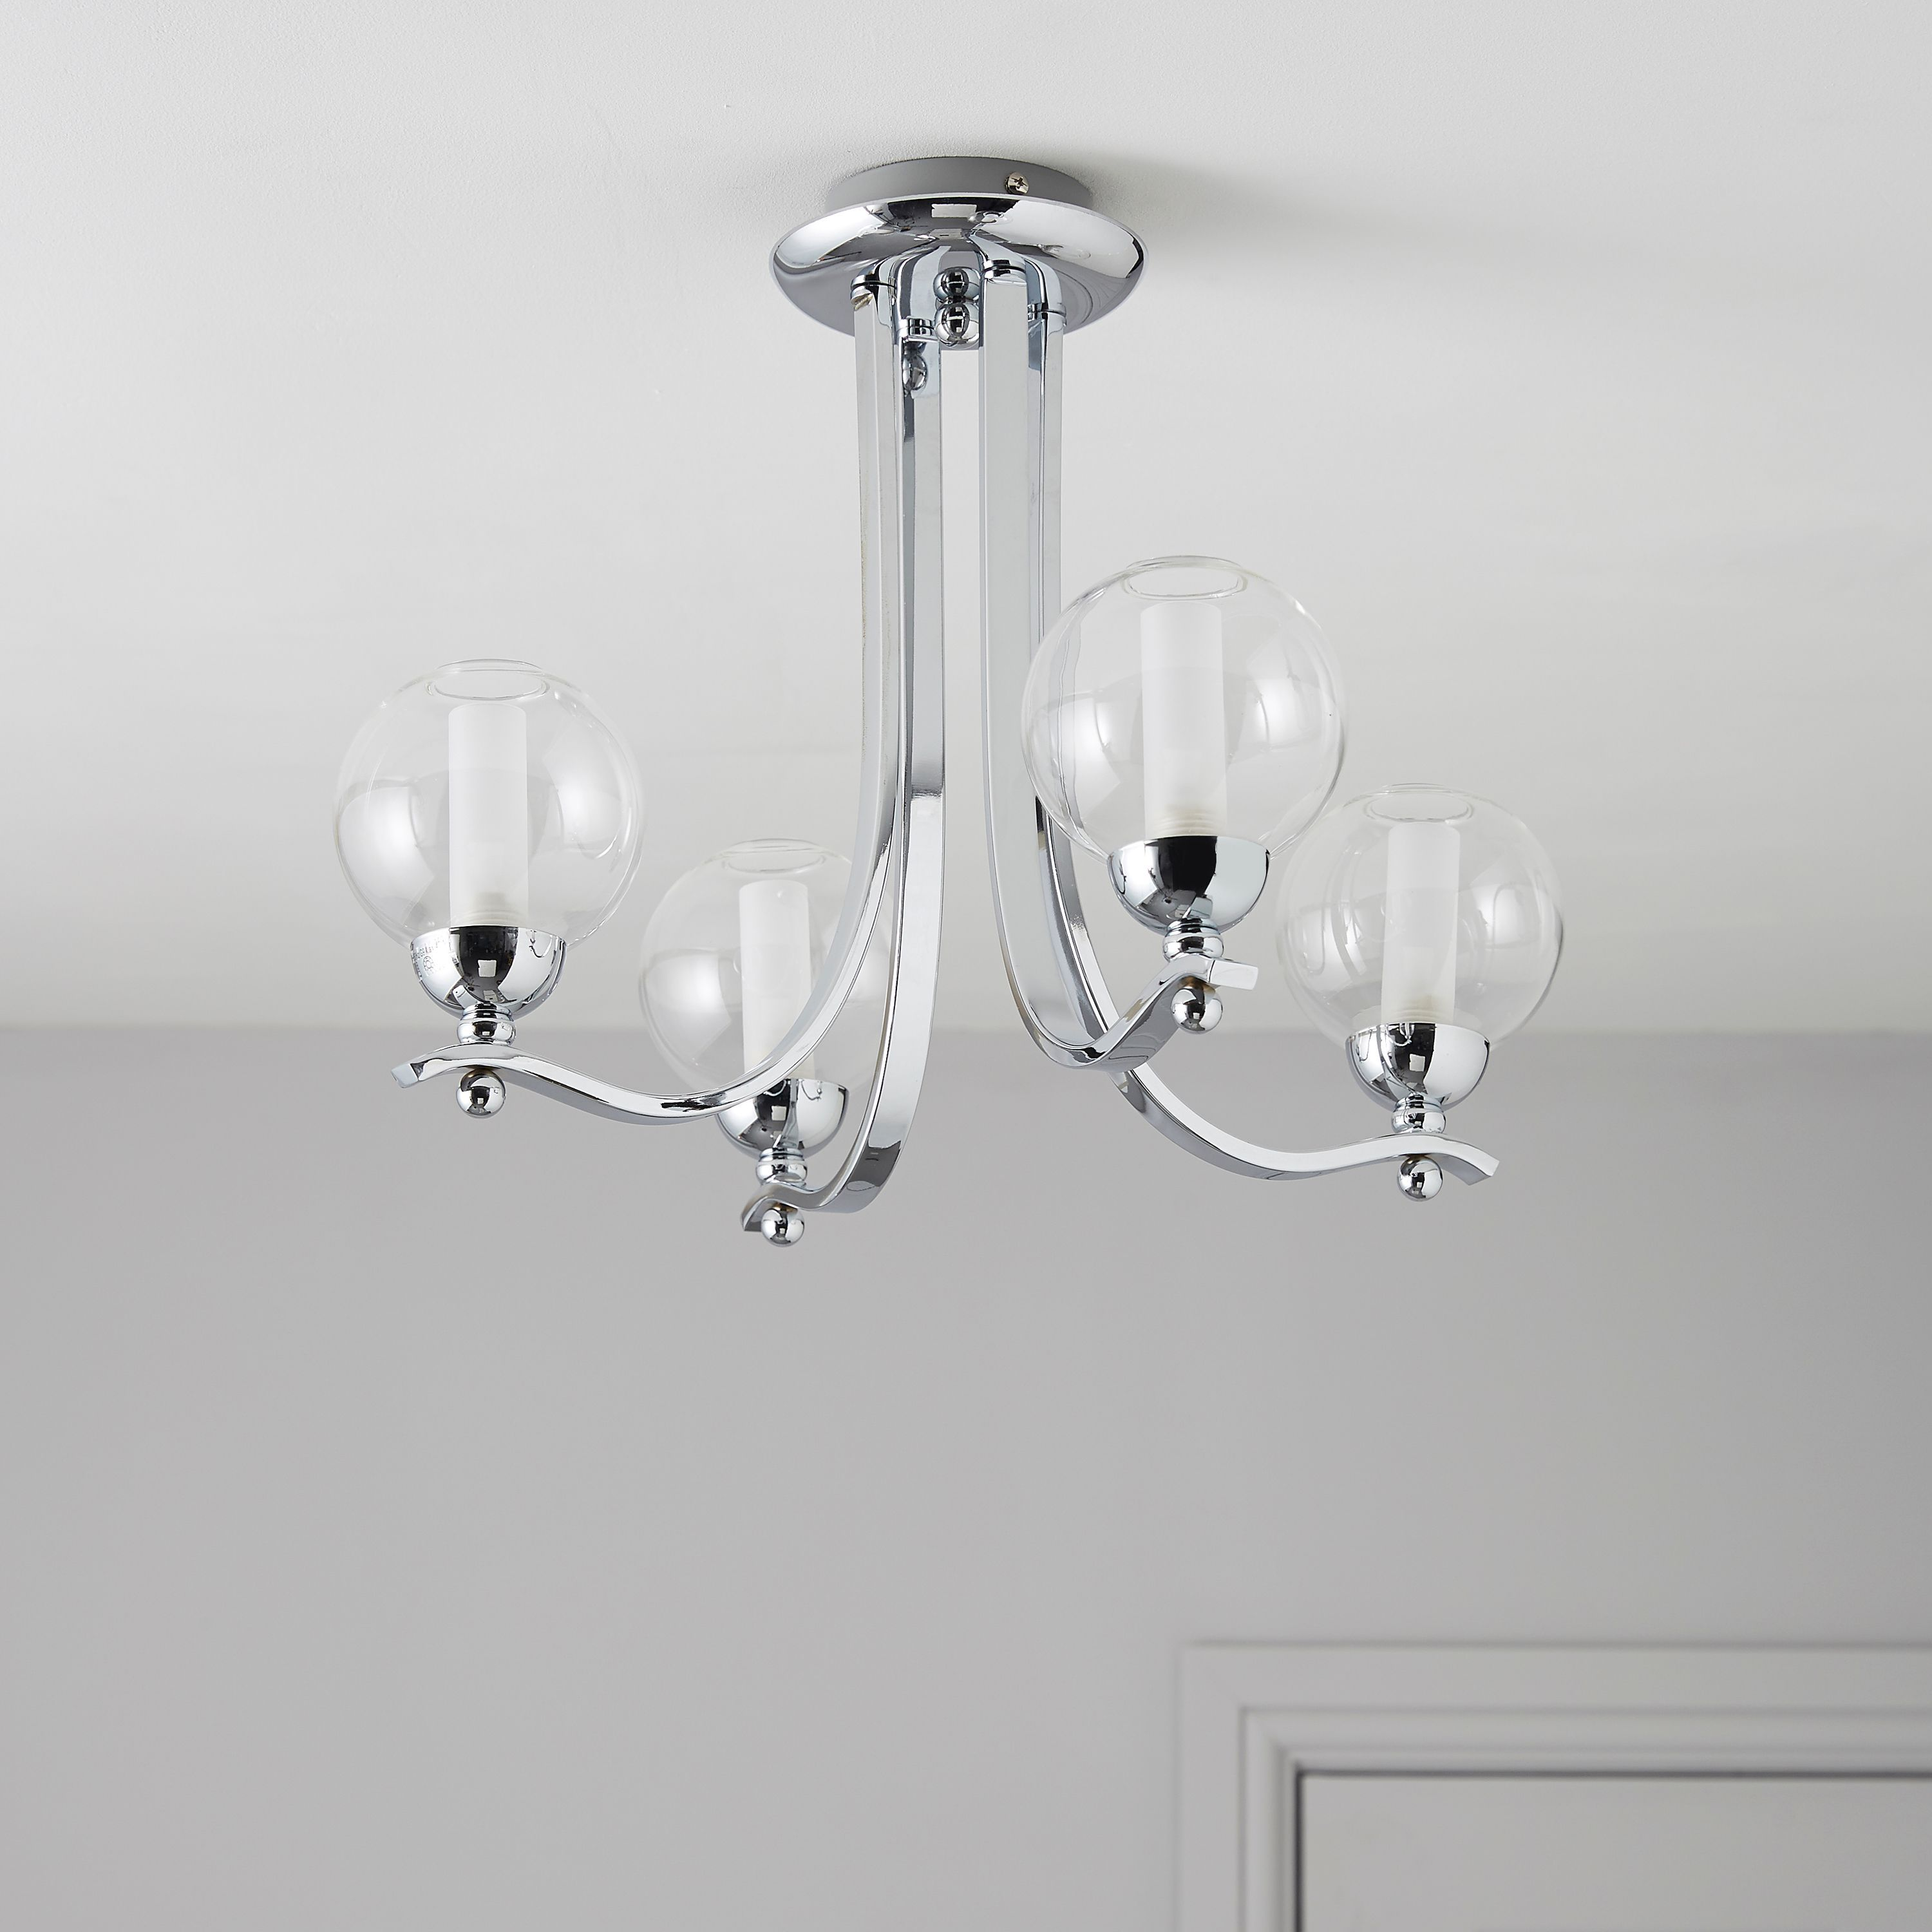 Outdoor Ceiling Lights B And Q : Giselle glass ball silver chrome effect lamp ceiling